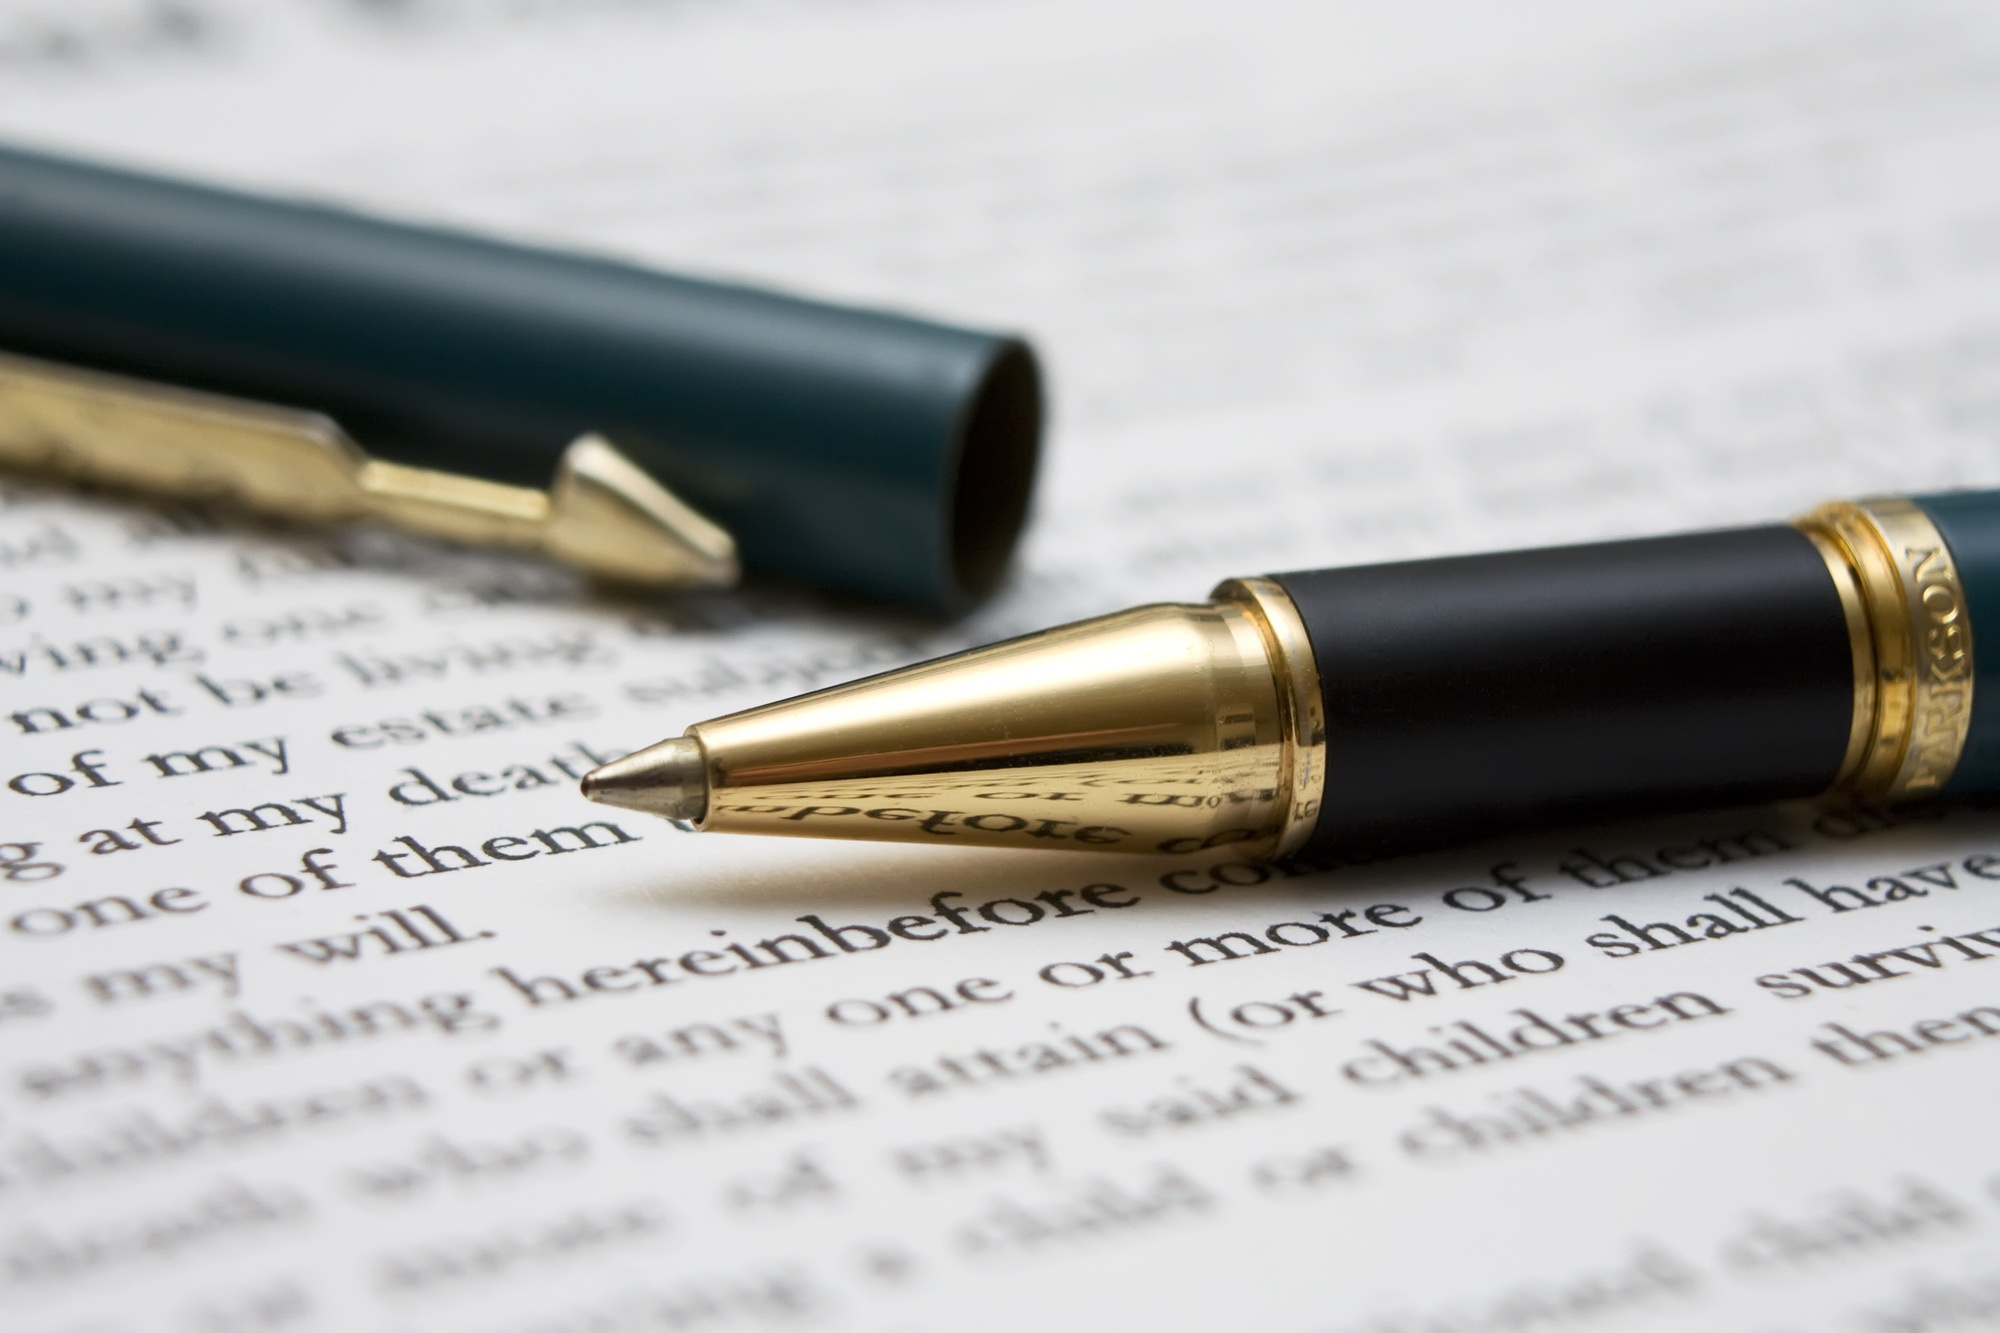 Registering a will in the UAE